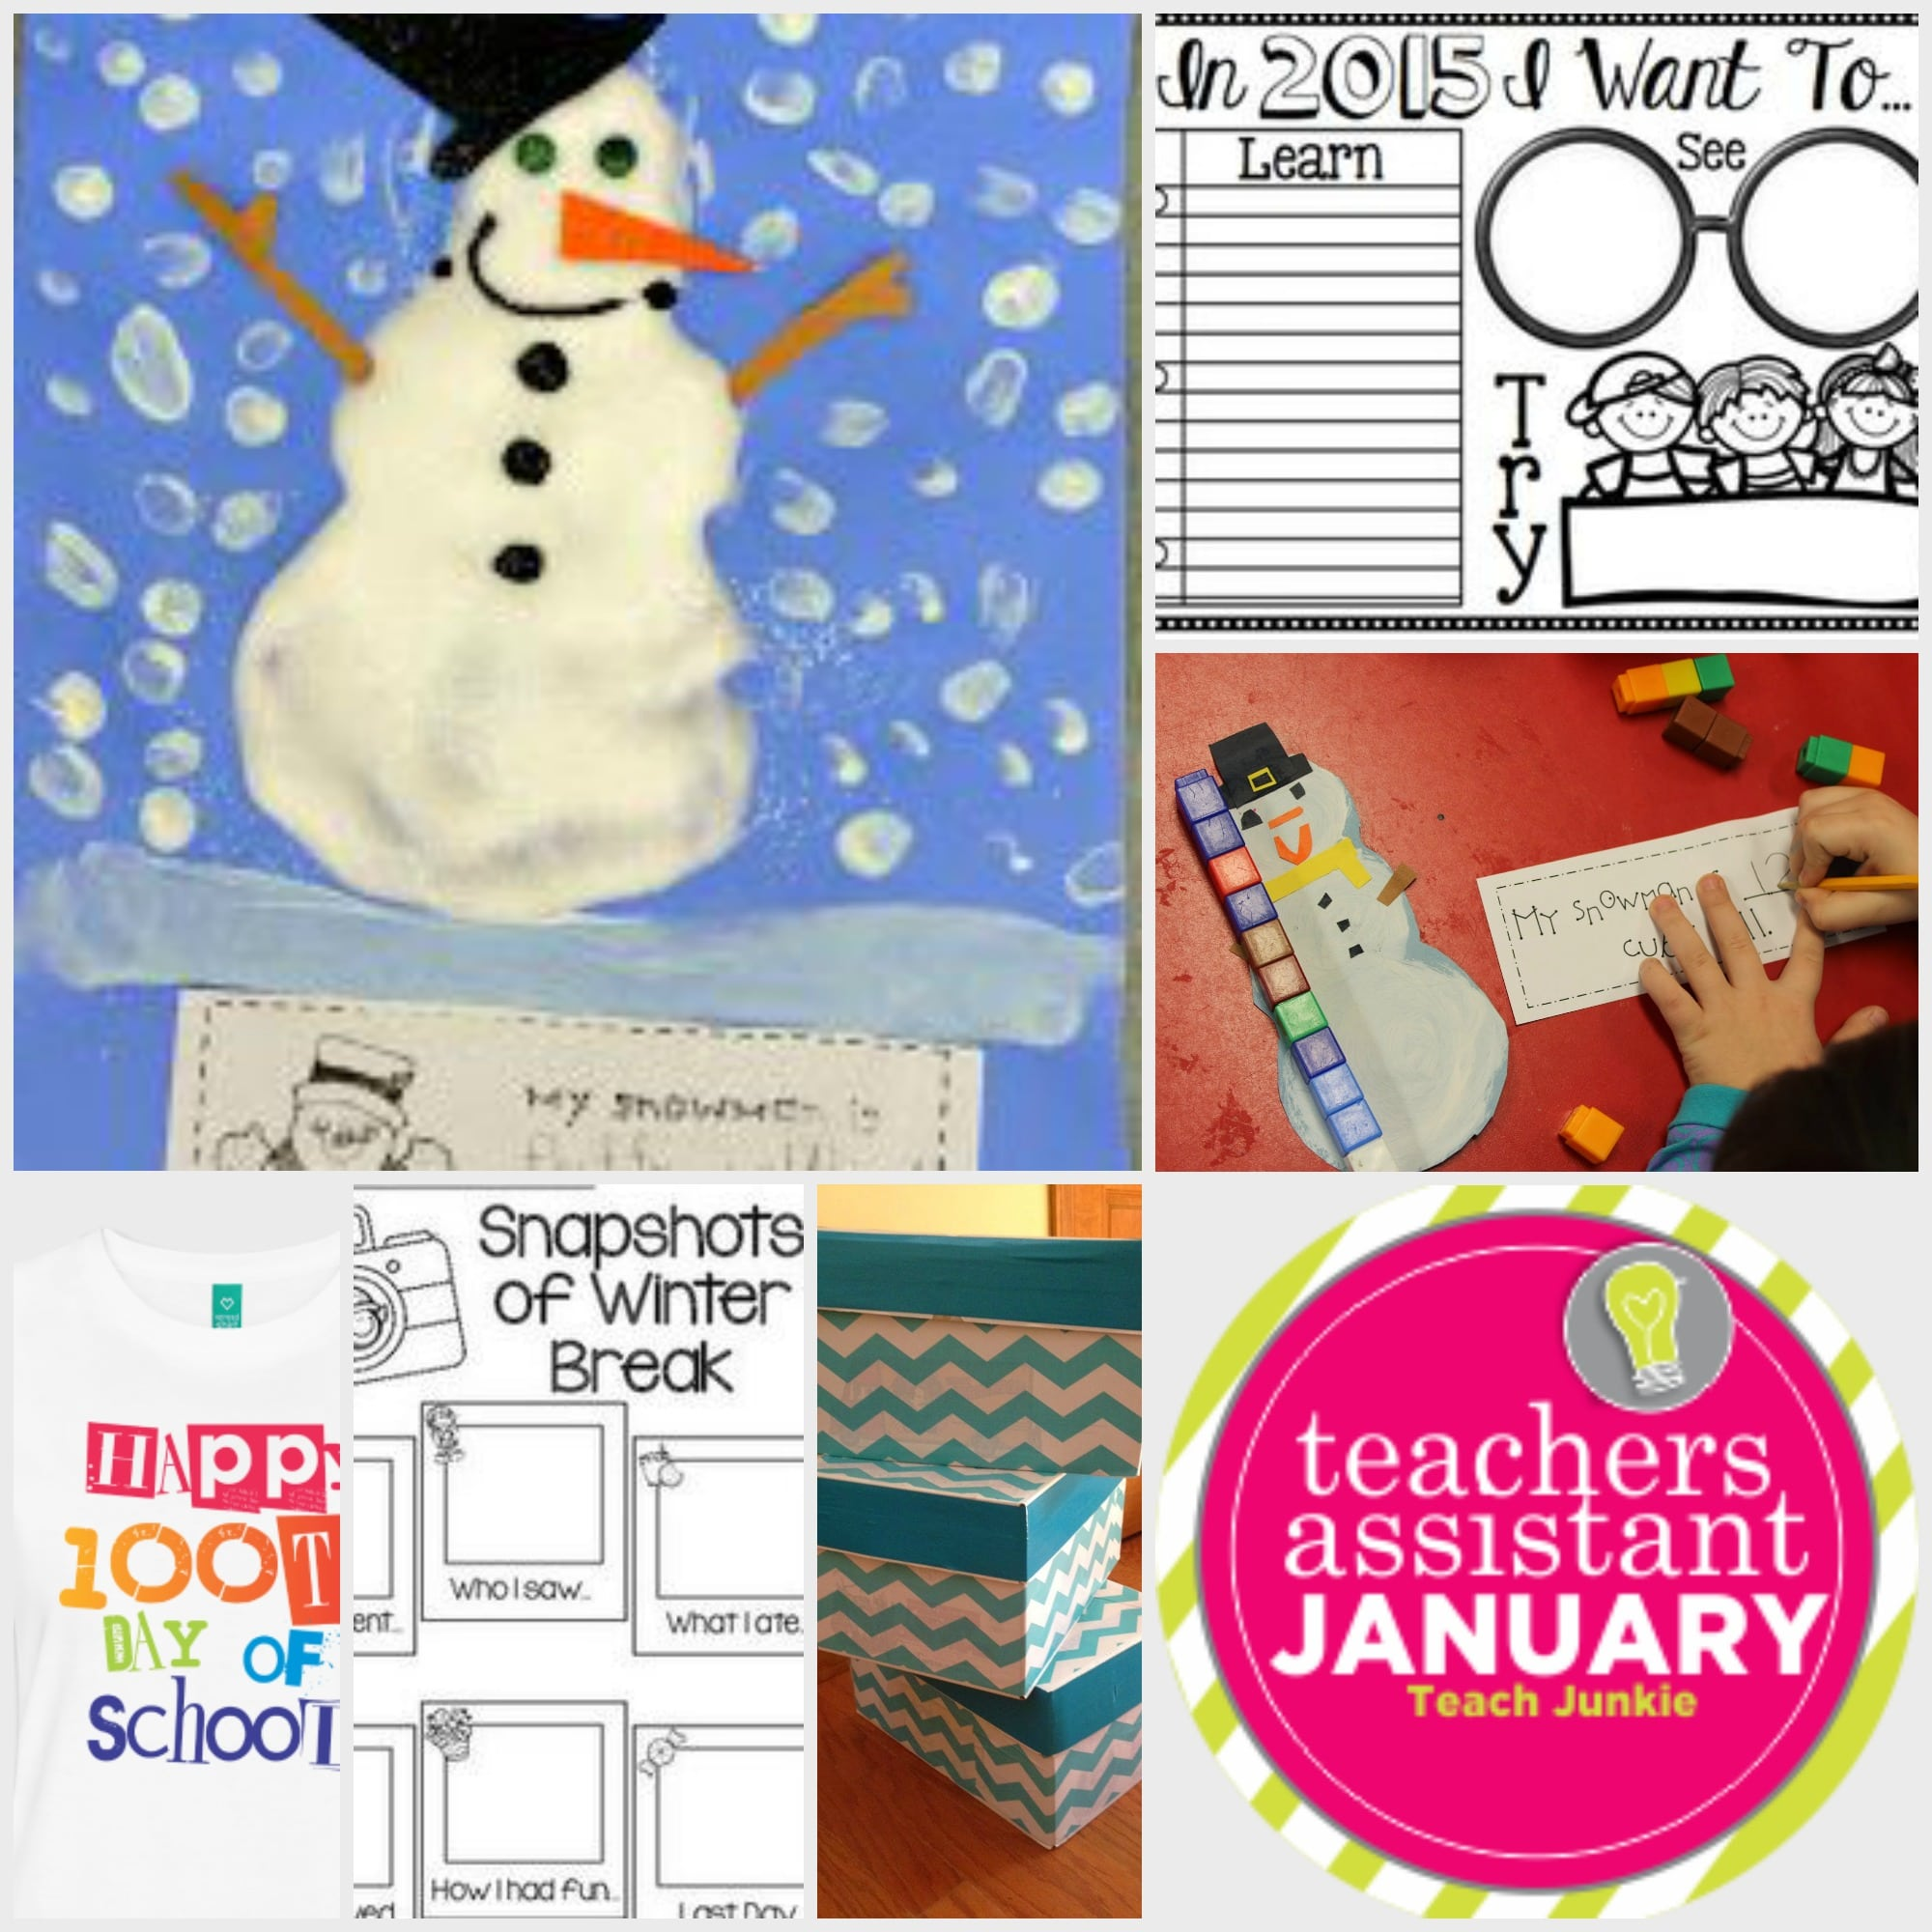 Your Personal Teacher's Assistant for January - Teach Junkie